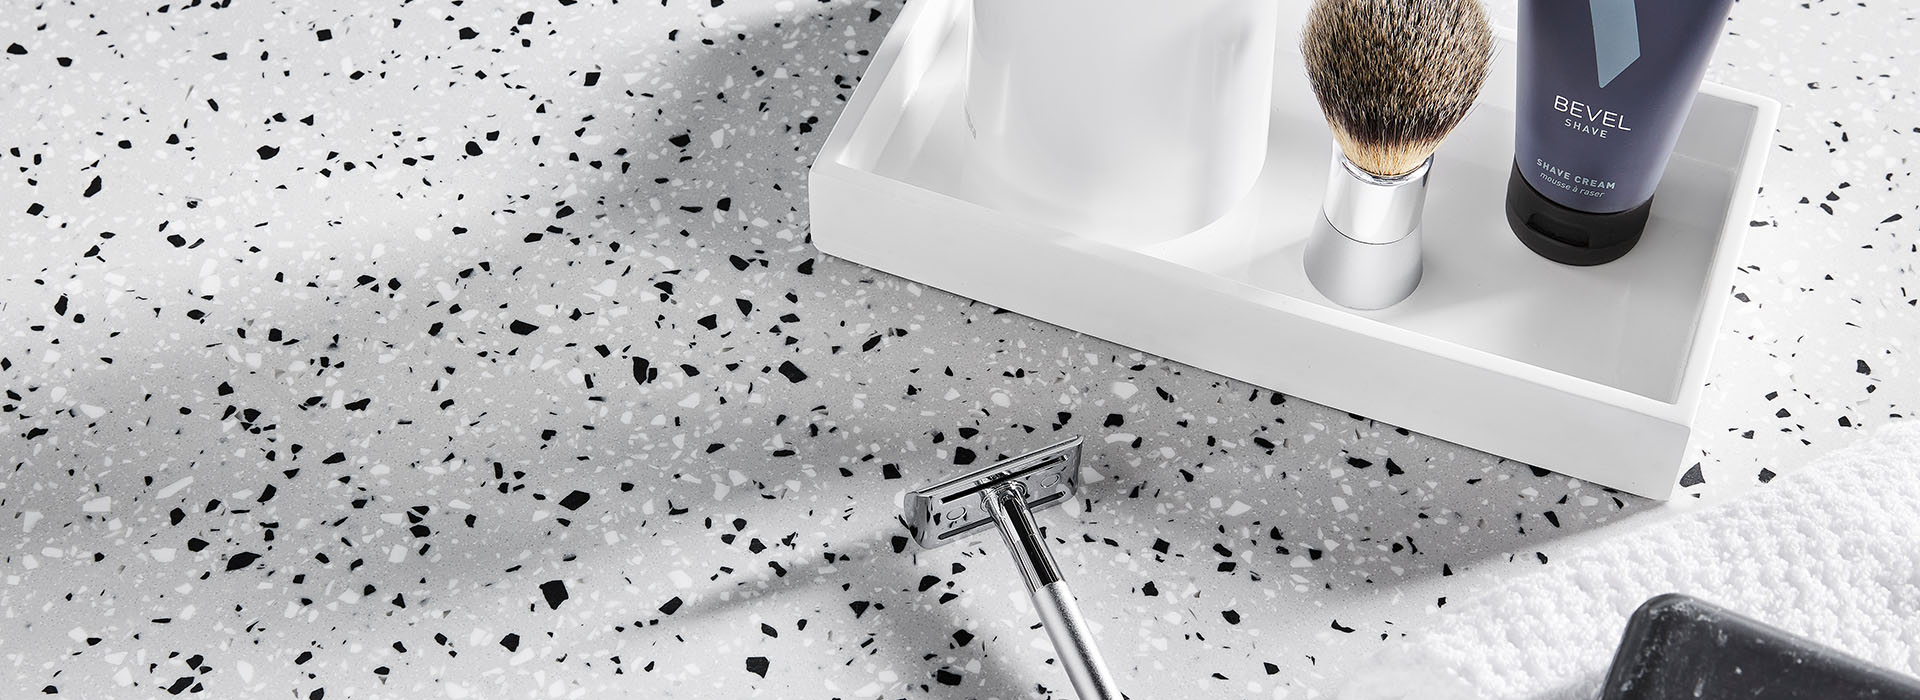 410 Argento Terrazzo Matrix solid surface bathroom sink counter with razor and soap dish